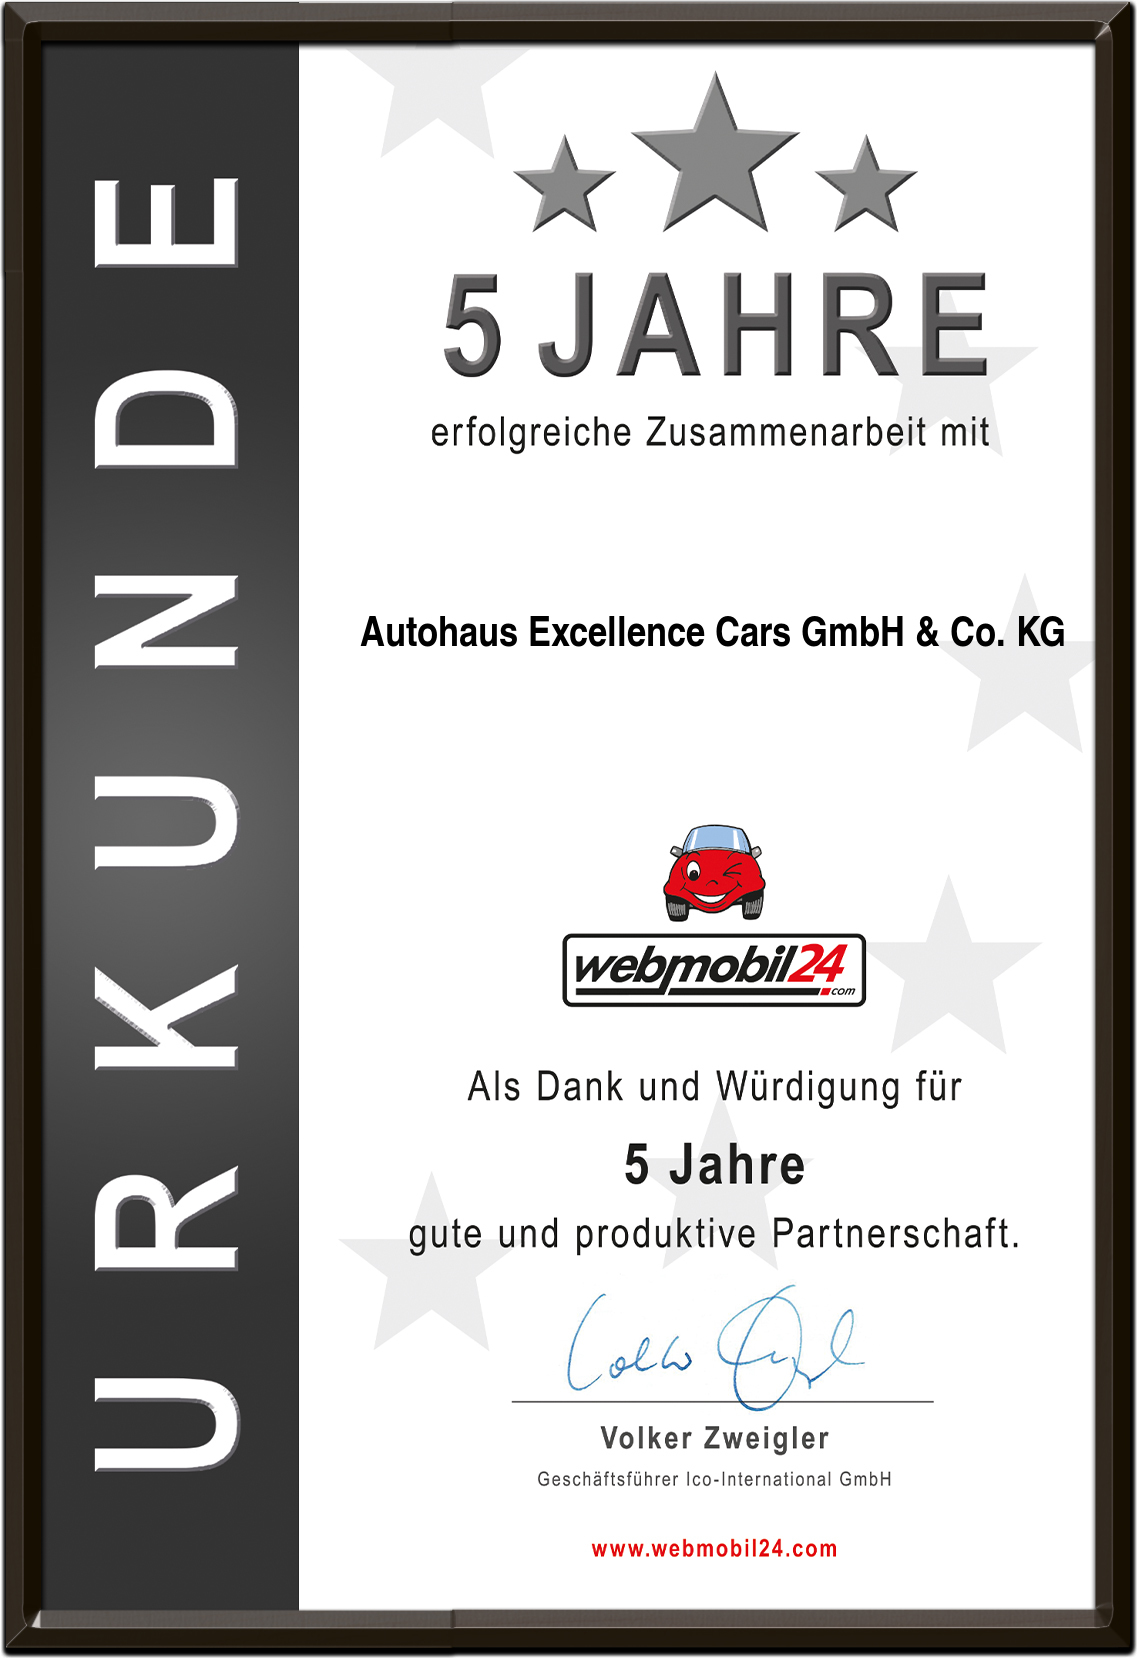 Autohaus Excellence Cars GmbH & Co. KG